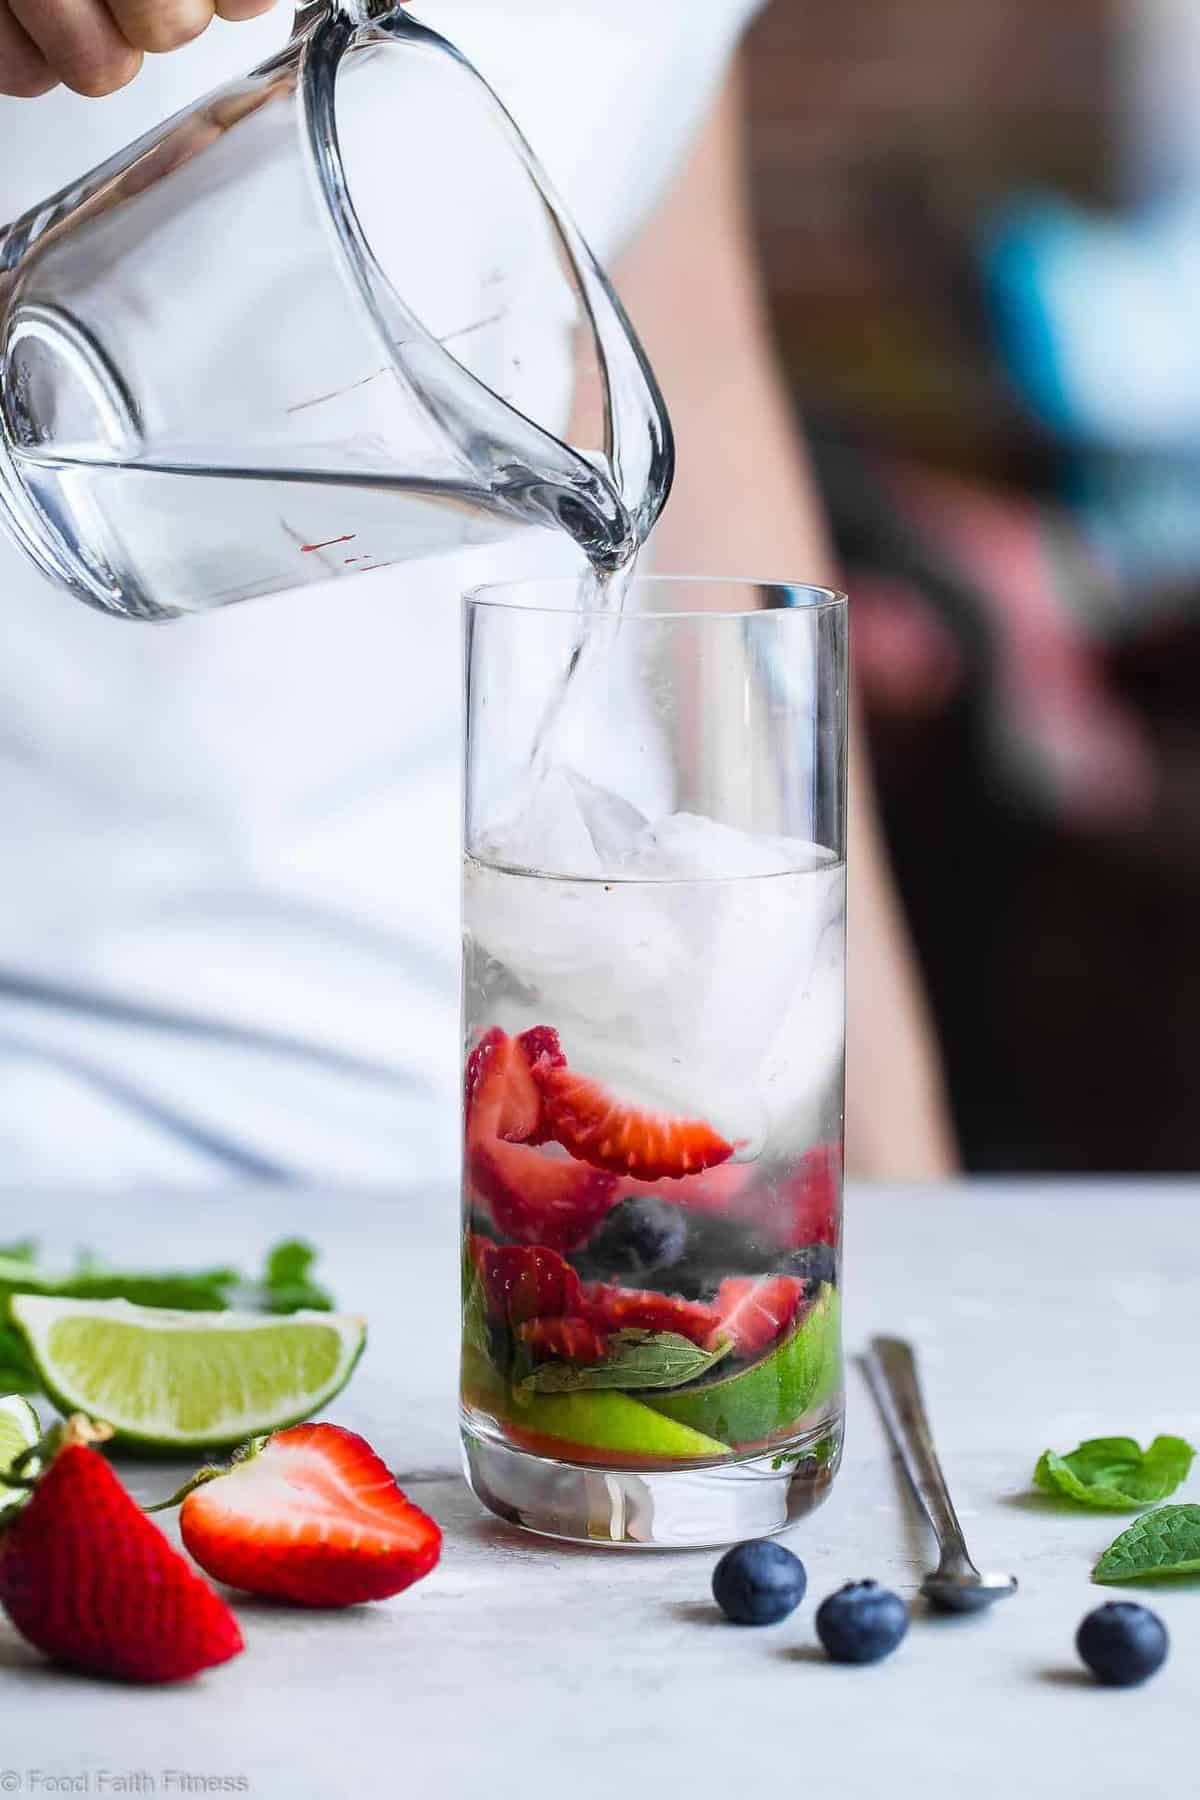 Red White and Blueberry Coconut Mojitos - This strawberry, coconut blueberry mojito recipe is a healthier, gluten free, easy Summer drink with only 130 calories and no sugar! Perfect for July 4th! | #Foodfaithfitness | #Mojito #July4th #Healthy #SugarFree #Glutenfree